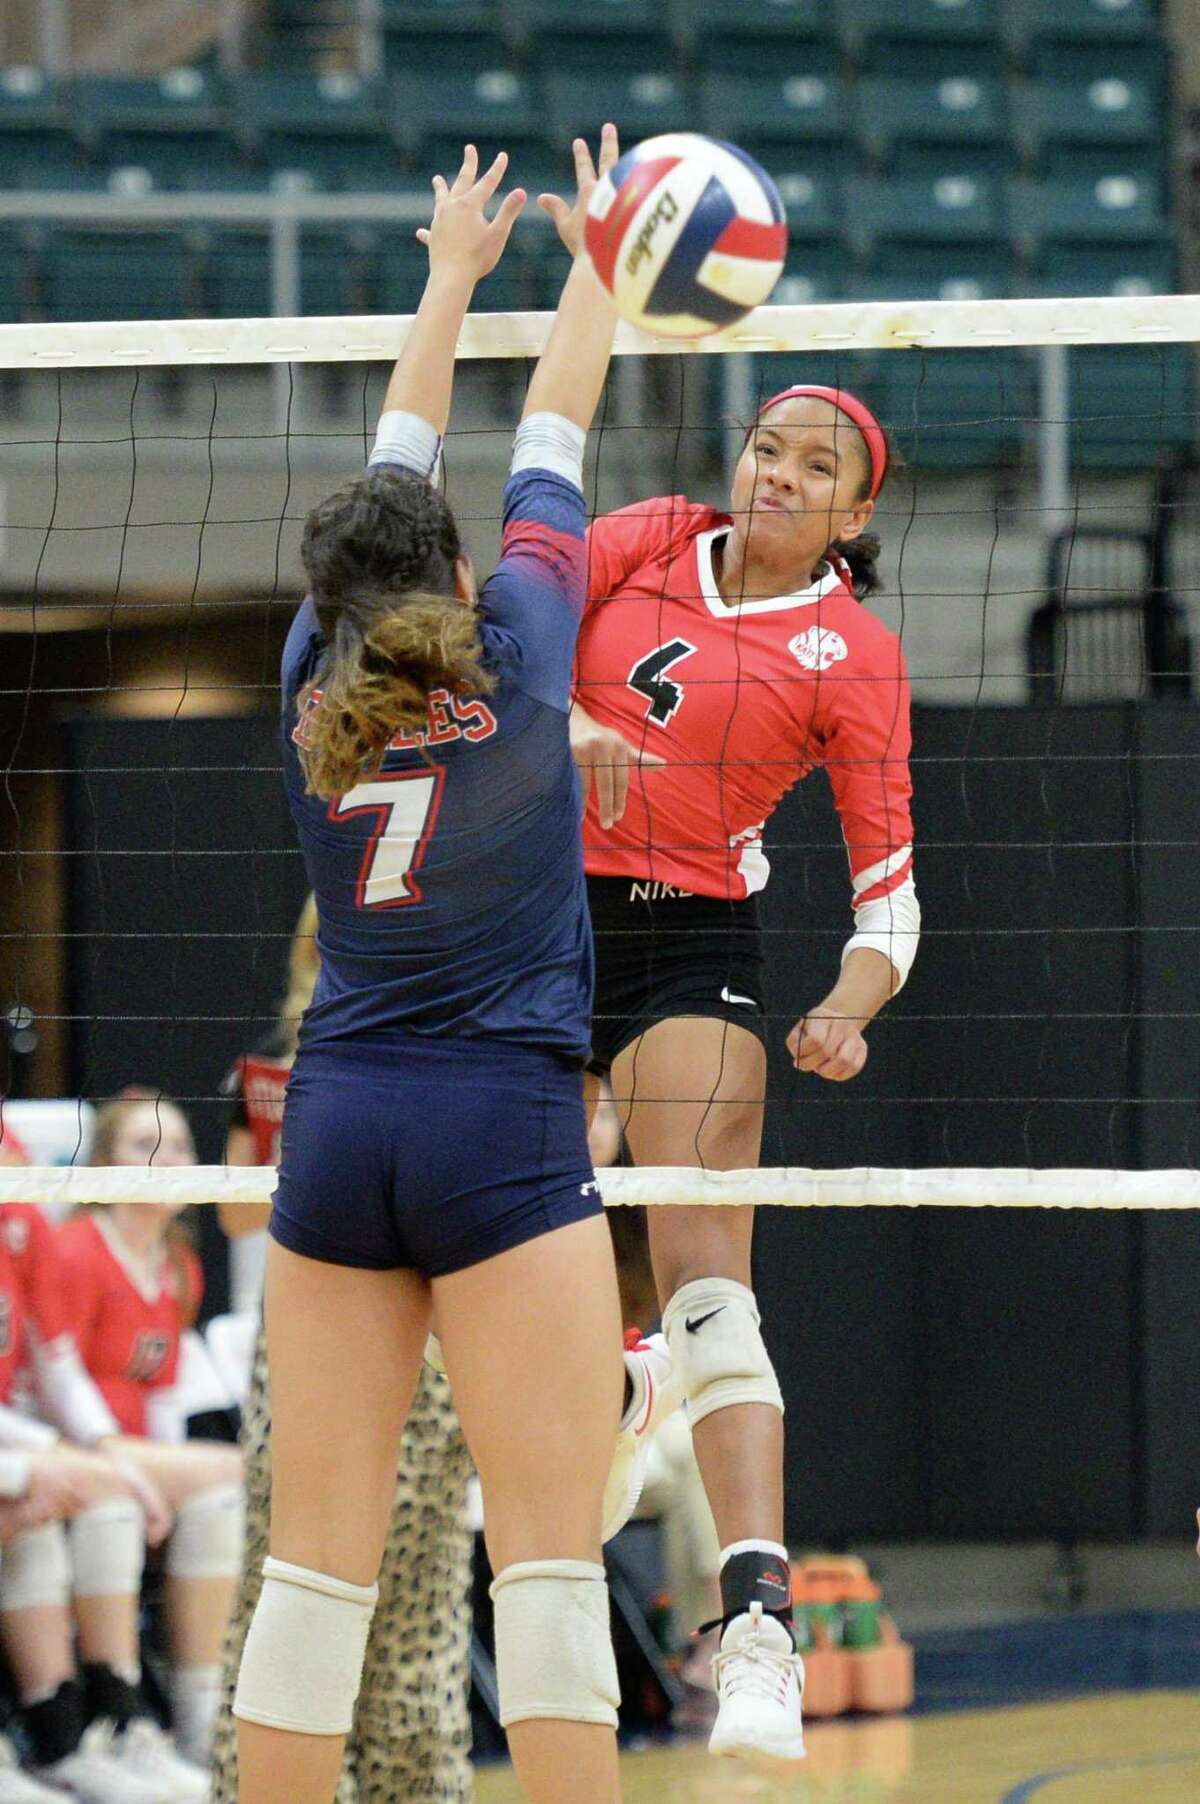 Perris Key (4) of Katy hits a kill shot past Renata Bolado Corona (7) of Dulles during the third set of a Class 6A Region III bi-district volleyball playoff match between the Dulles Vikings and the Katy Tigers on Monday, November 4, 2019 at the Leonard Merrell Center, Katy, TX.